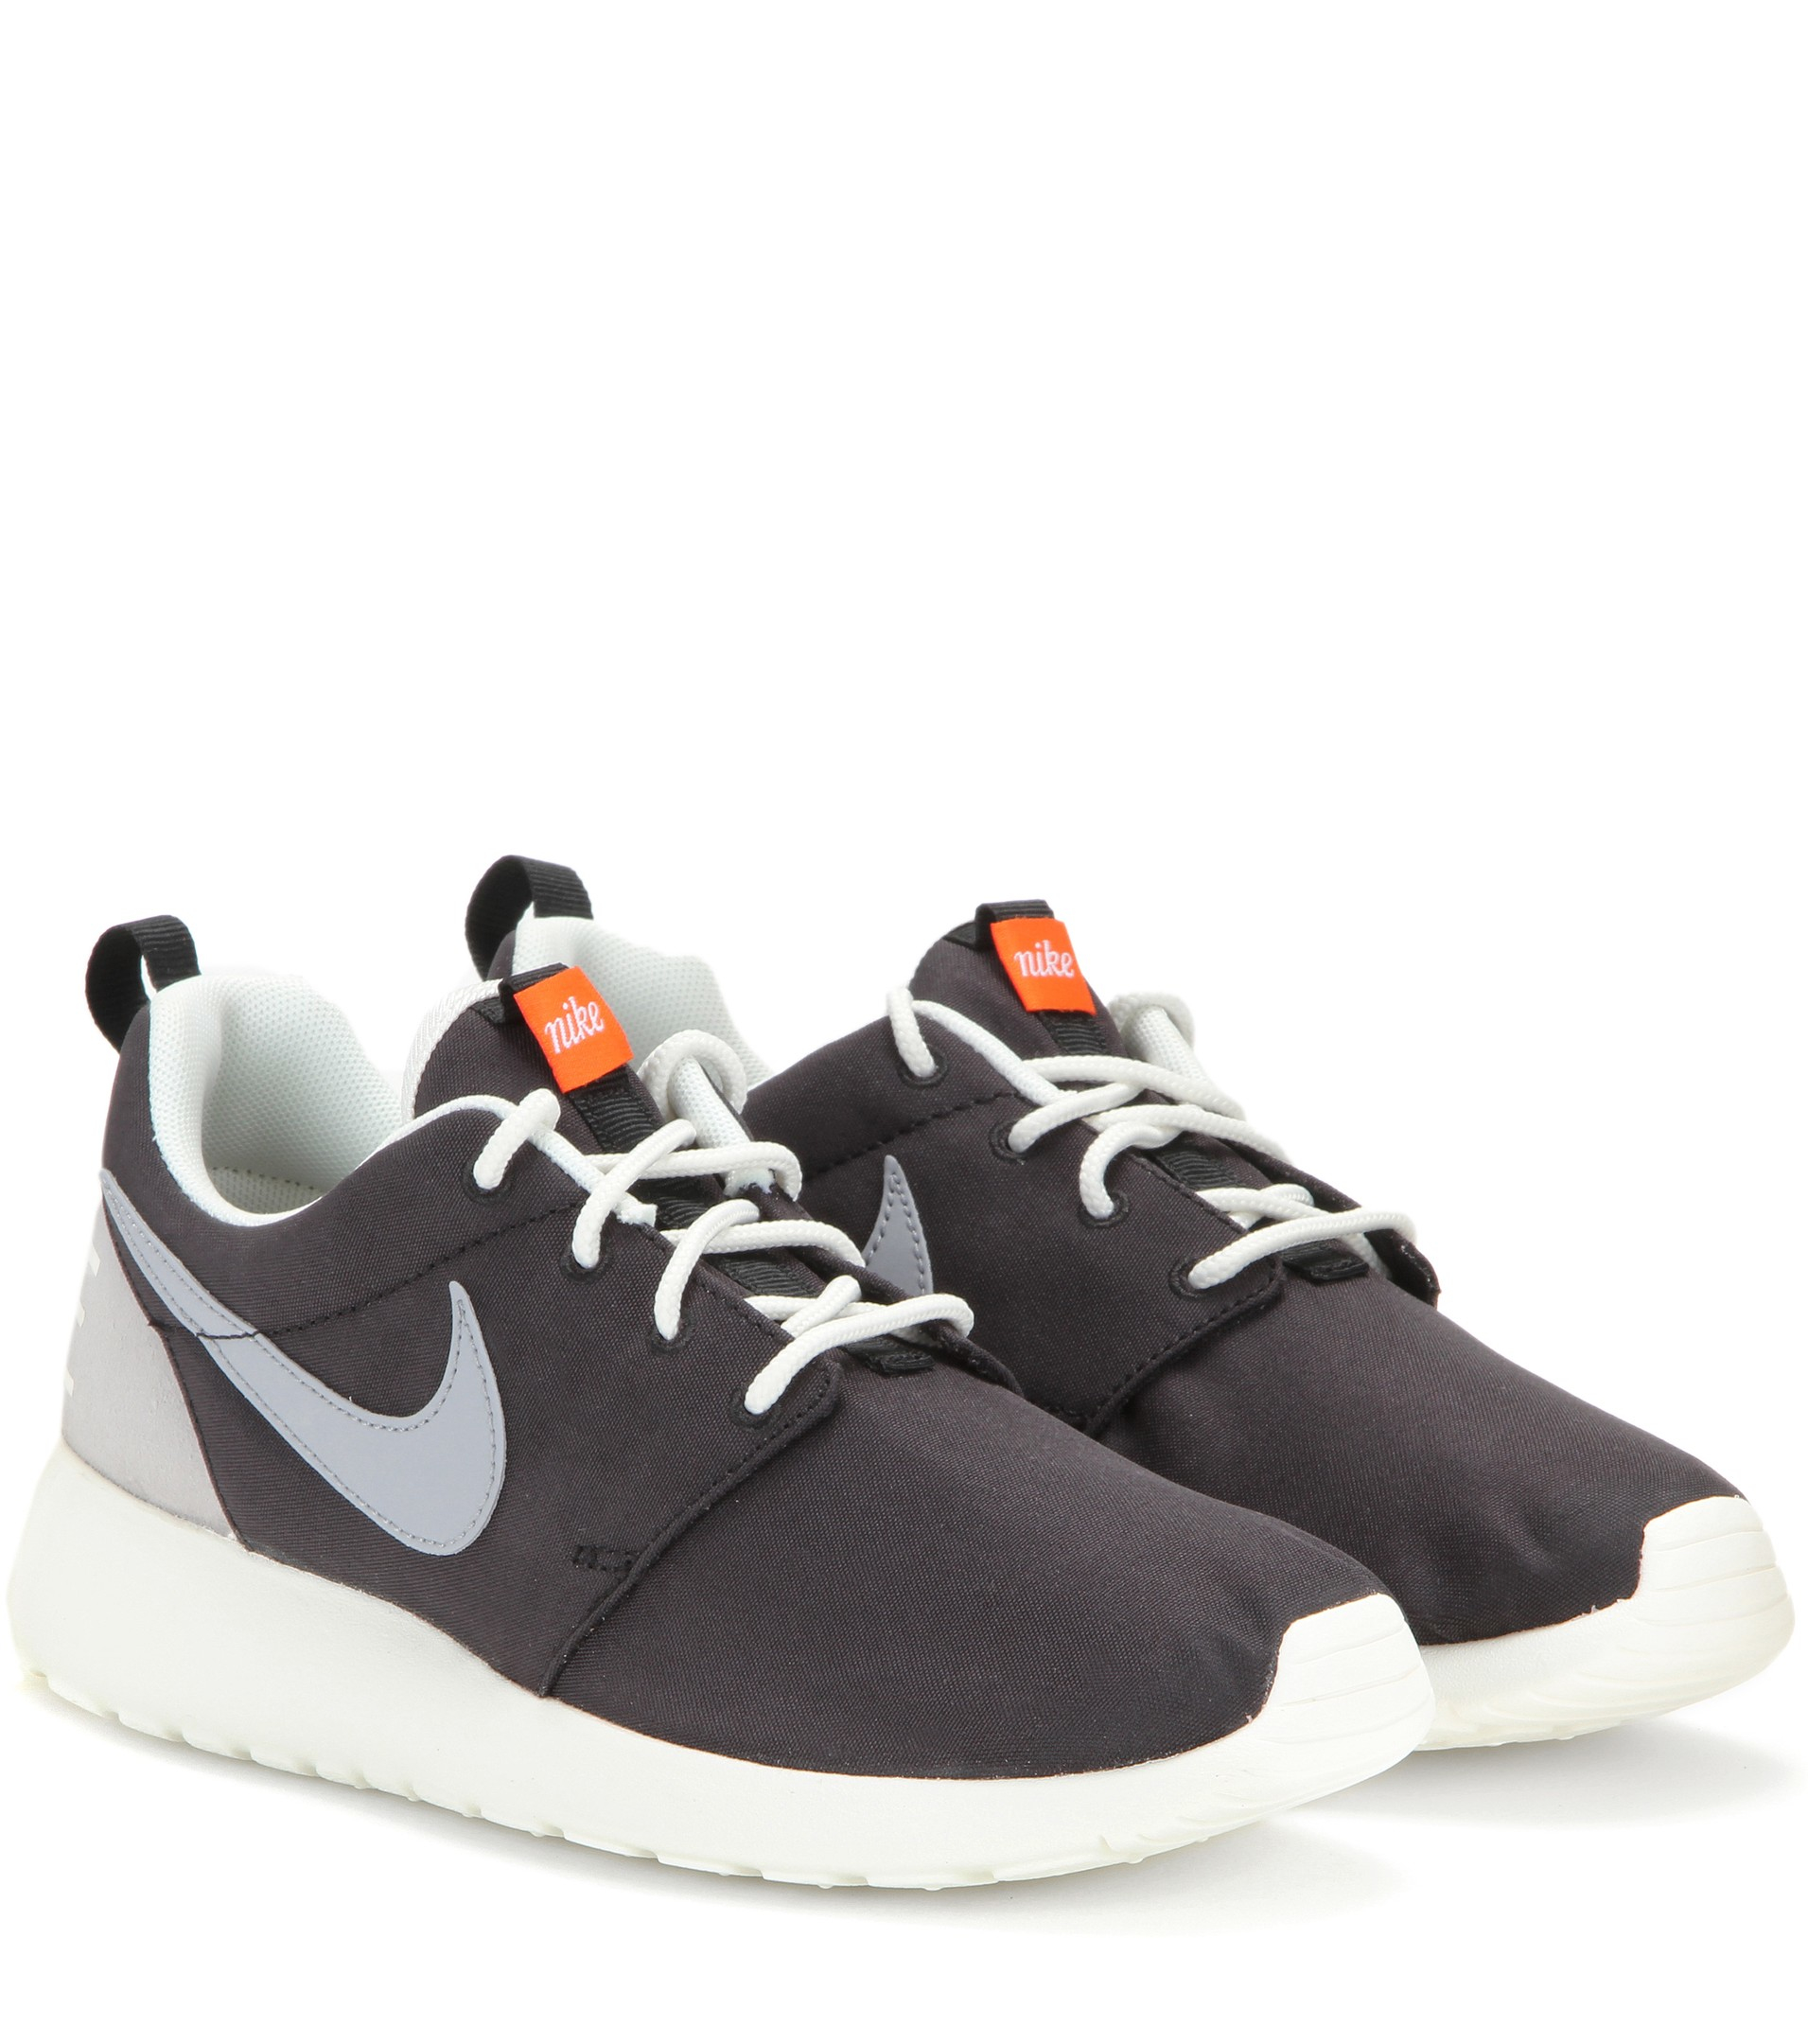 e6bbd12a01f05 ... reduced lyst nike roshe one retro sneakers in gray fe386 5bc05